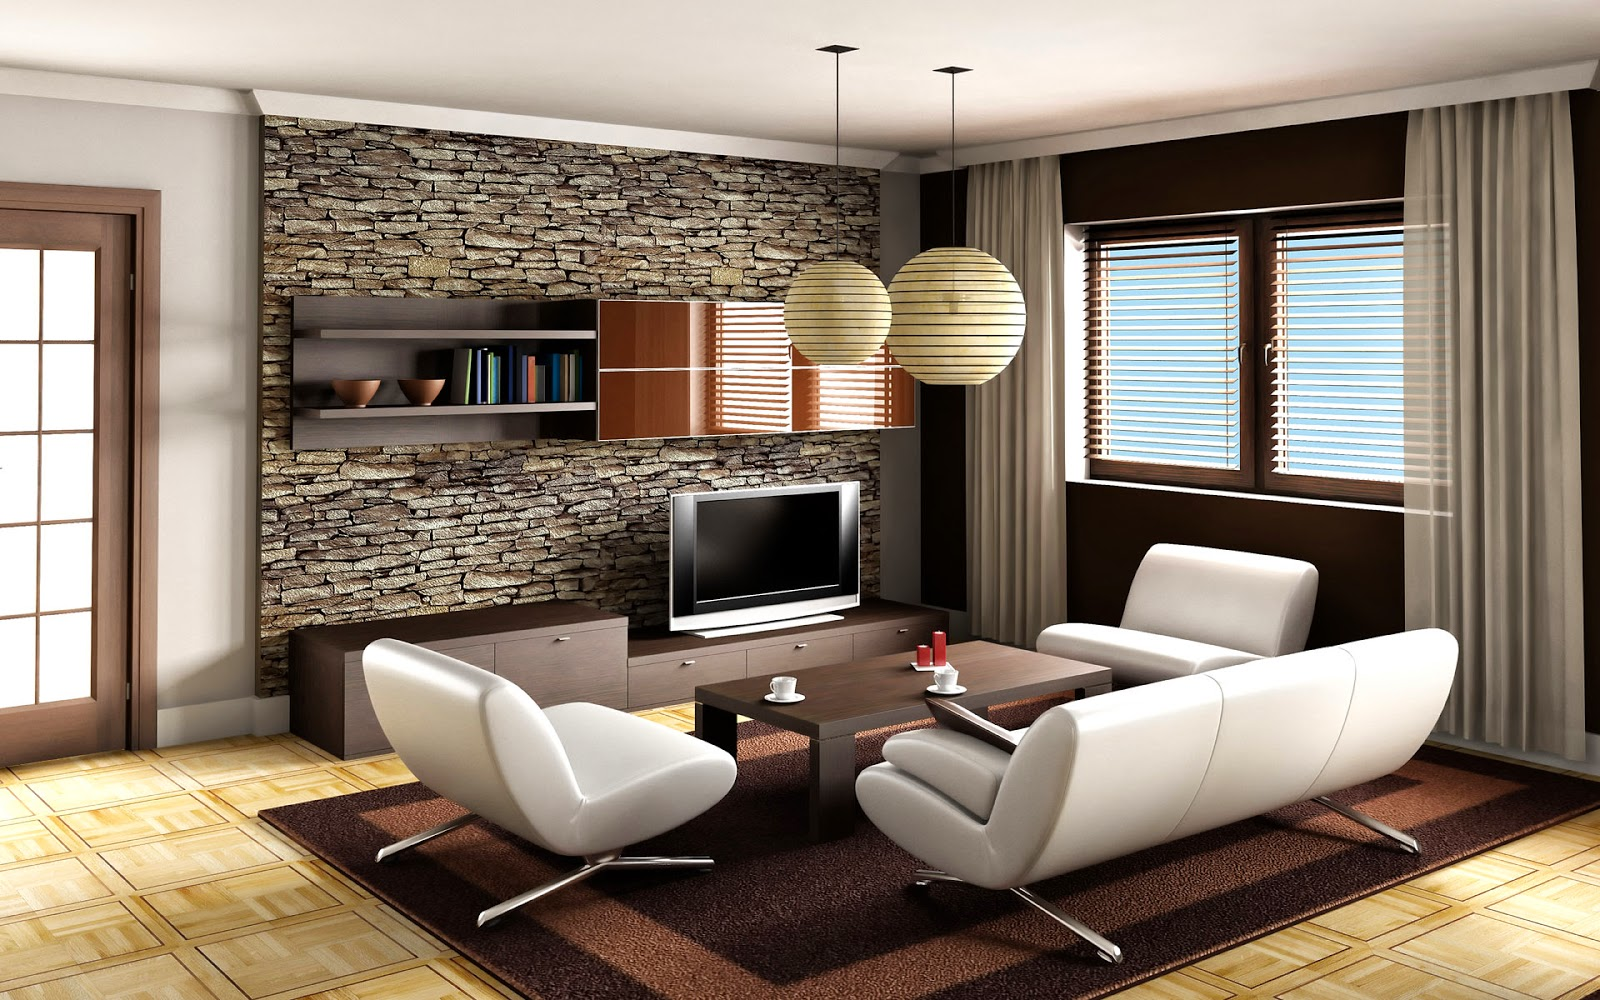 #2 Living Room Decor Ideas Brown Leather Sofa | Home ...